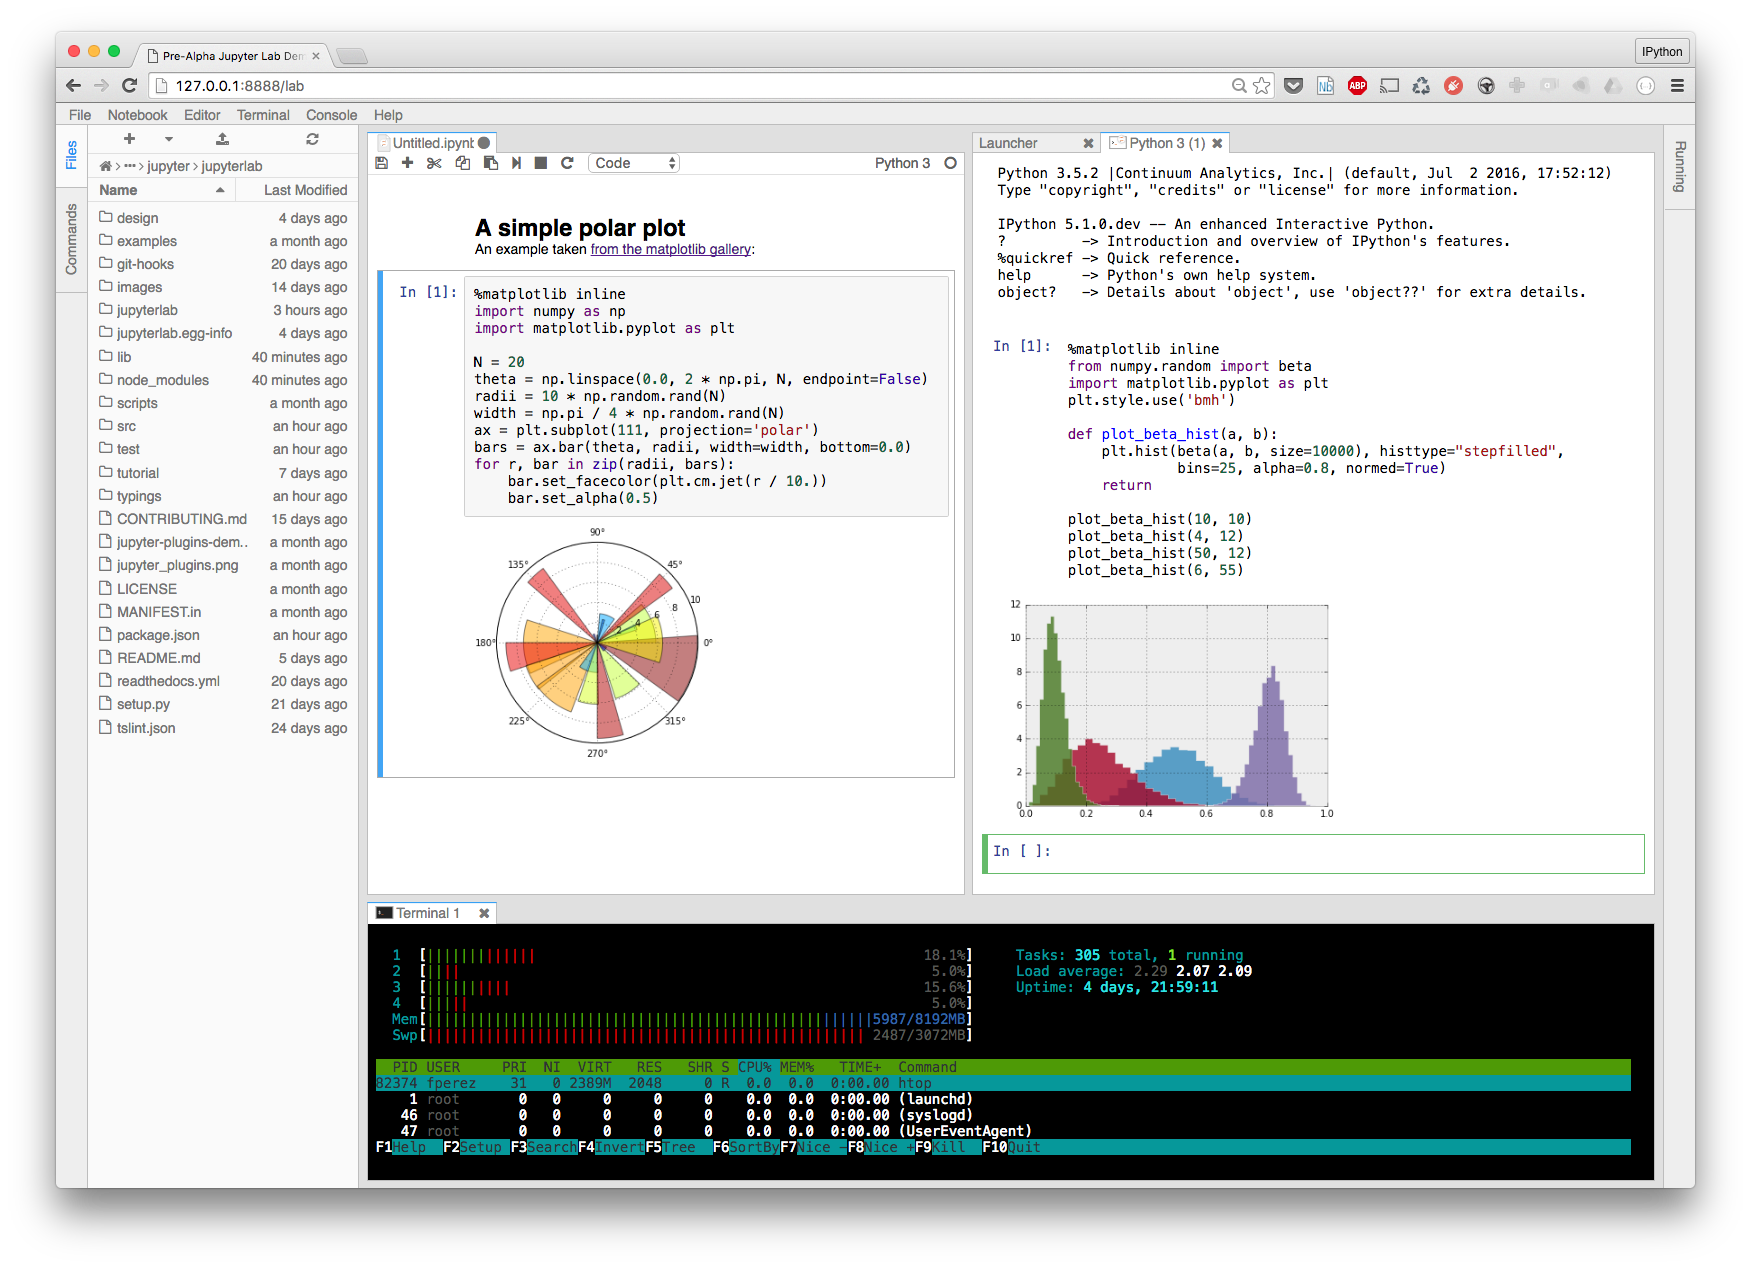 JupyterLab MacOSX + Anaconda で matplotlib のインライン表示ができない!解決方法 / How to use matplotlib inline with JupyterLab in MacOSX and Anaconda